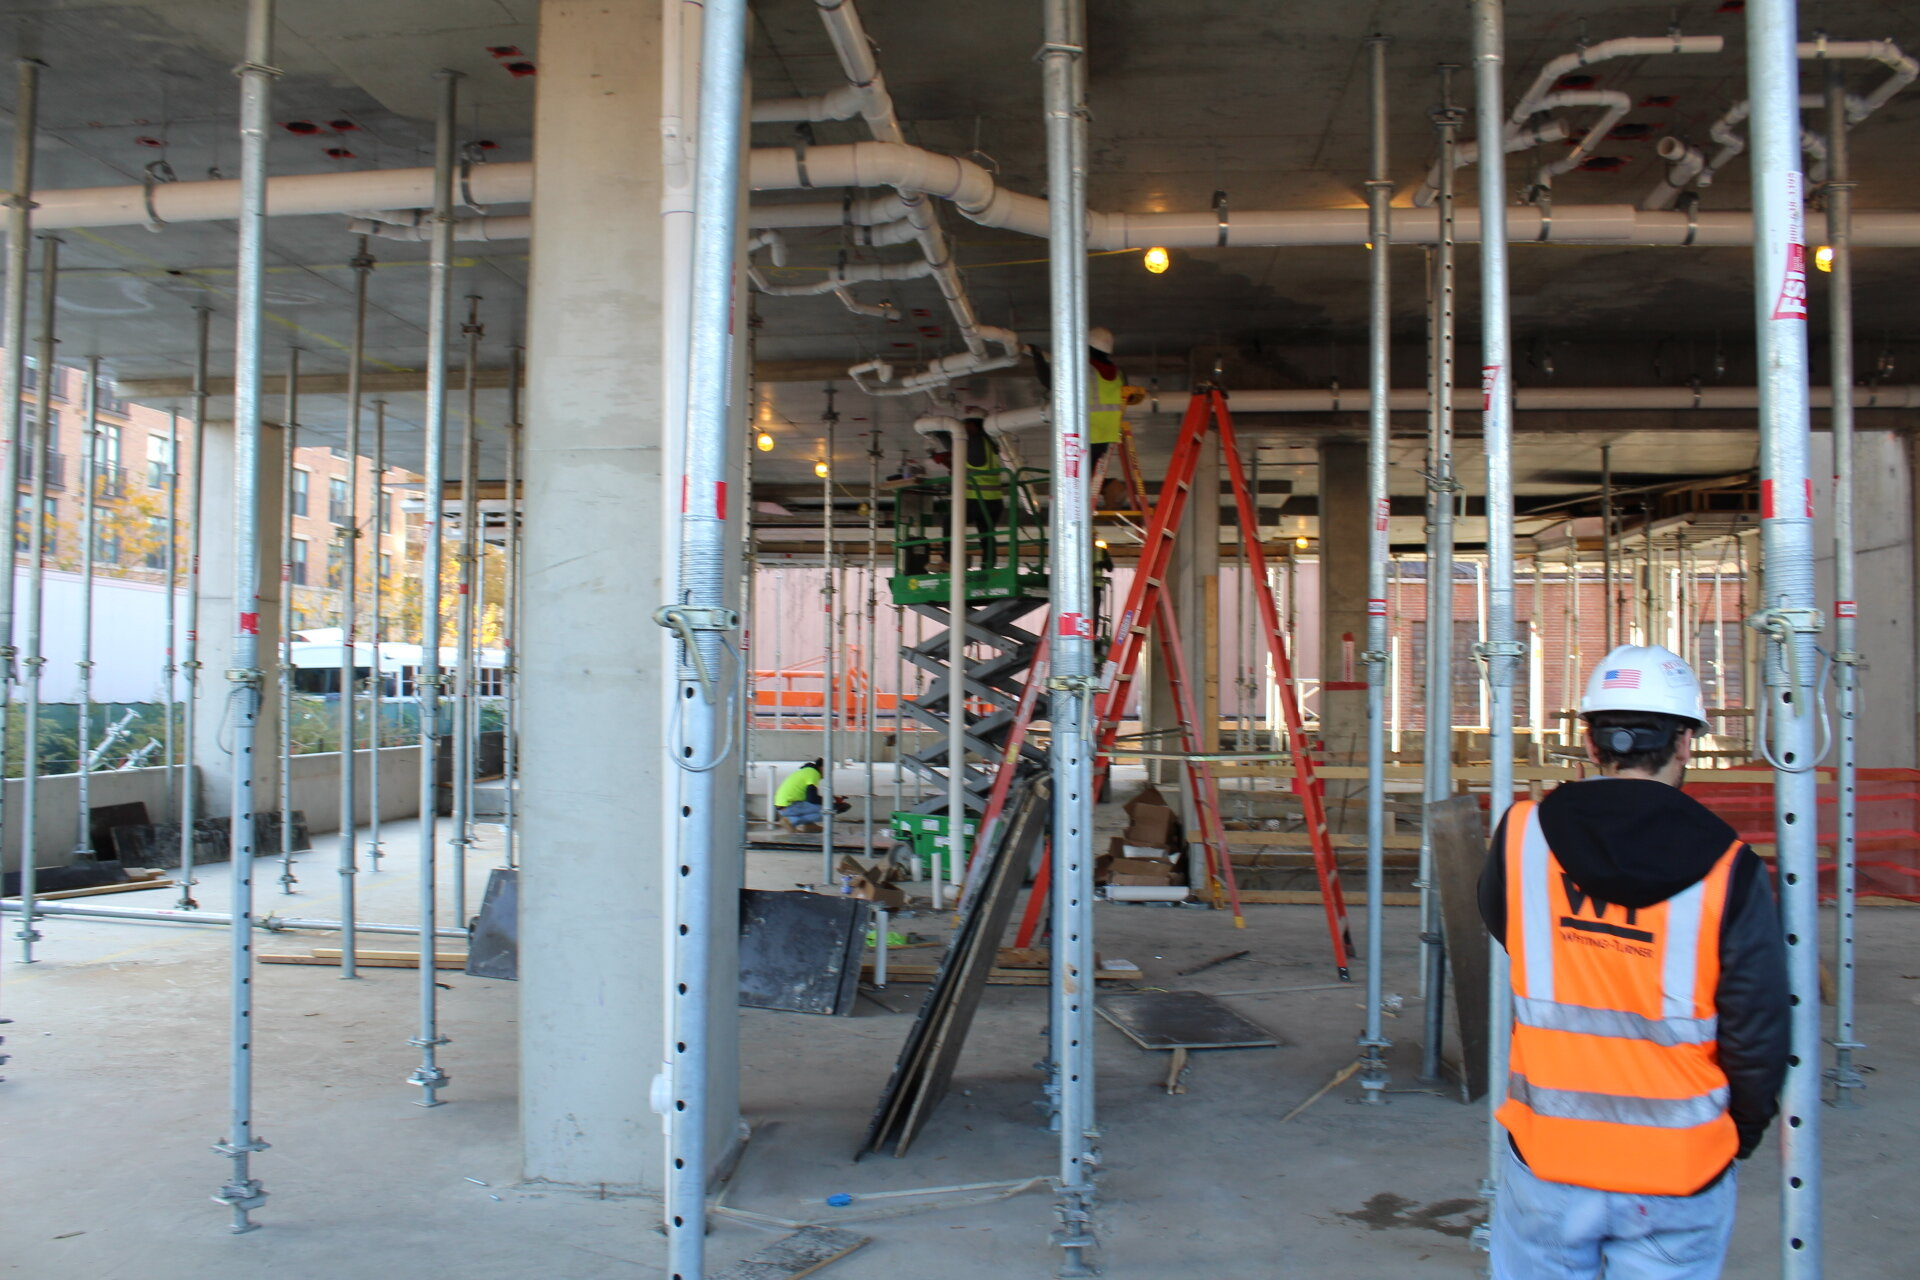 Looking into the future Bloom residential lobby on the south end of the building.